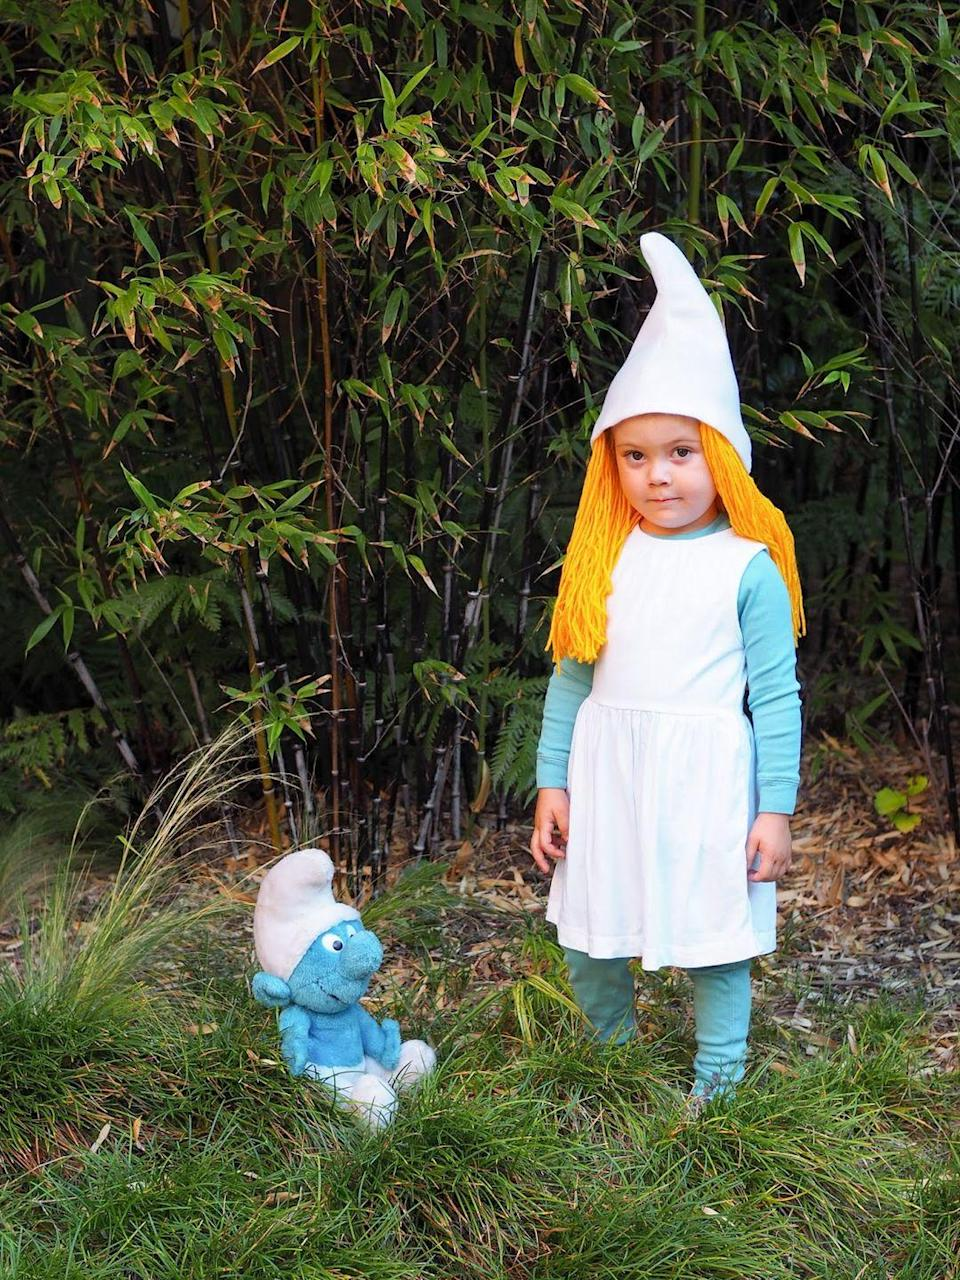 """<p>The smurfs may have found their way into our hearts in the '80s, but these lovable blue buddies are still just as popular with kids today. Follow this easy tutorial for a last-minute costume your child will love!</p><p><strong>See more at <a href=""""http://www.littlehiccups.net/2017/10/last-minute-halloween-diy-smurf-costume.html"""" rel=""""nofollow noopener"""" target=""""_blank"""" data-ylk=""""slk:Little Hiccups"""" class=""""link rapid-noclick-resp"""">Little Hiccups</a>. </strong></p><p><a class=""""link rapid-noclick-resp"""" href=""""https://go.redirectingat.com?id=74968X1596630&url=https%3A%2F%2Fwww.walmart.com%2Fip%2FRed-Heart-Super-Saver-Desert-Camouflage-Yarn-1-Each%2F17209246&sref=https%3A%2F%2Fwww.thepioneerwoman.com%2Fholidays-celebrations%2Fg32645069%2F80s-halloween-costumes%2F"""" rel=""""nofollow noopener"""" target=""""_blank"""" data-ylk=""""slk:SHOP YELLOW YARN"""">SHOP YELLOW YARN</a></p>"""